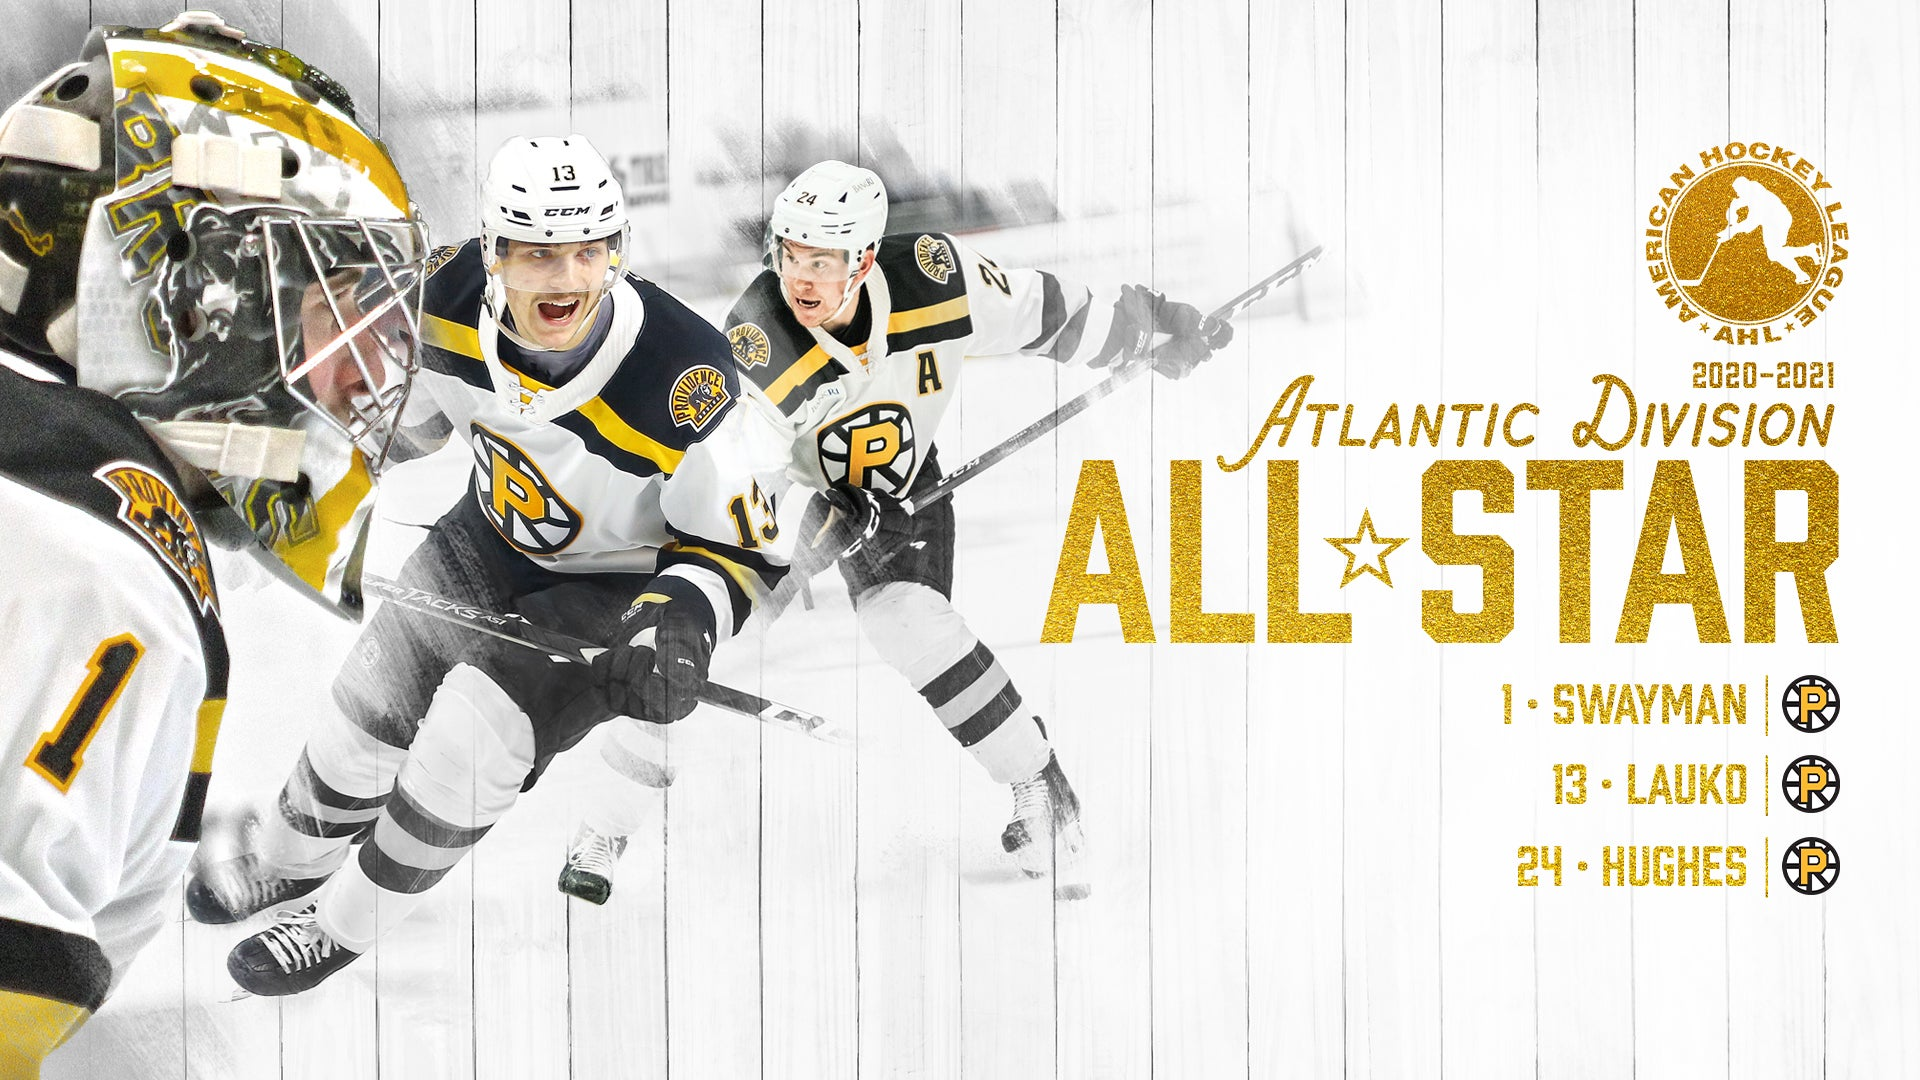 THREE P-BRUINS NAMED TO ATLANTIC DIVISION ALL-STAR TEAM